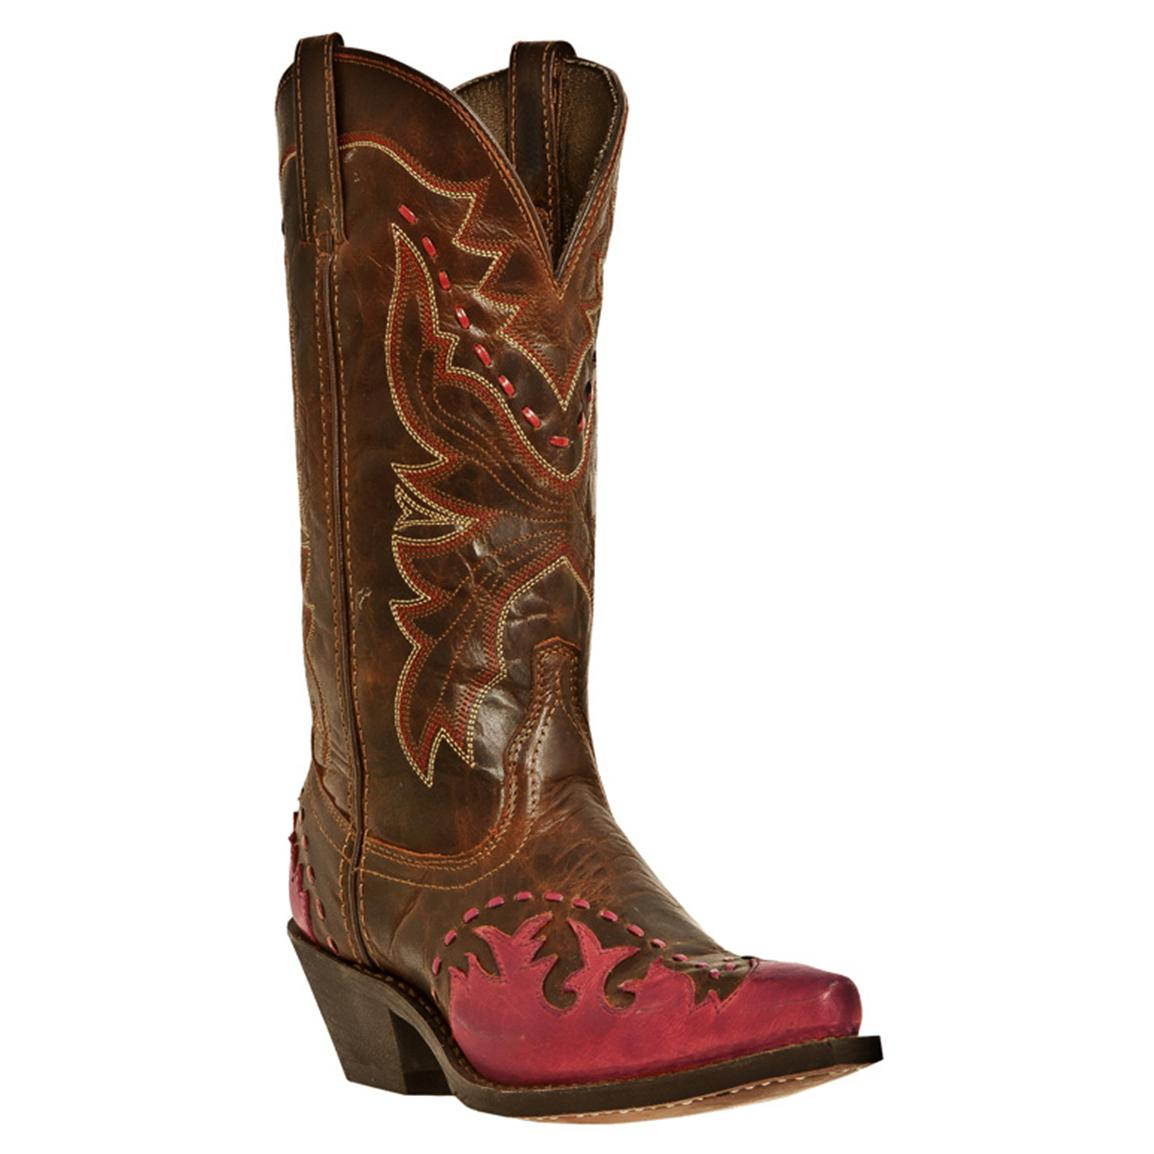 Women's Laredo 11 inch Fever Western Boots, Brown